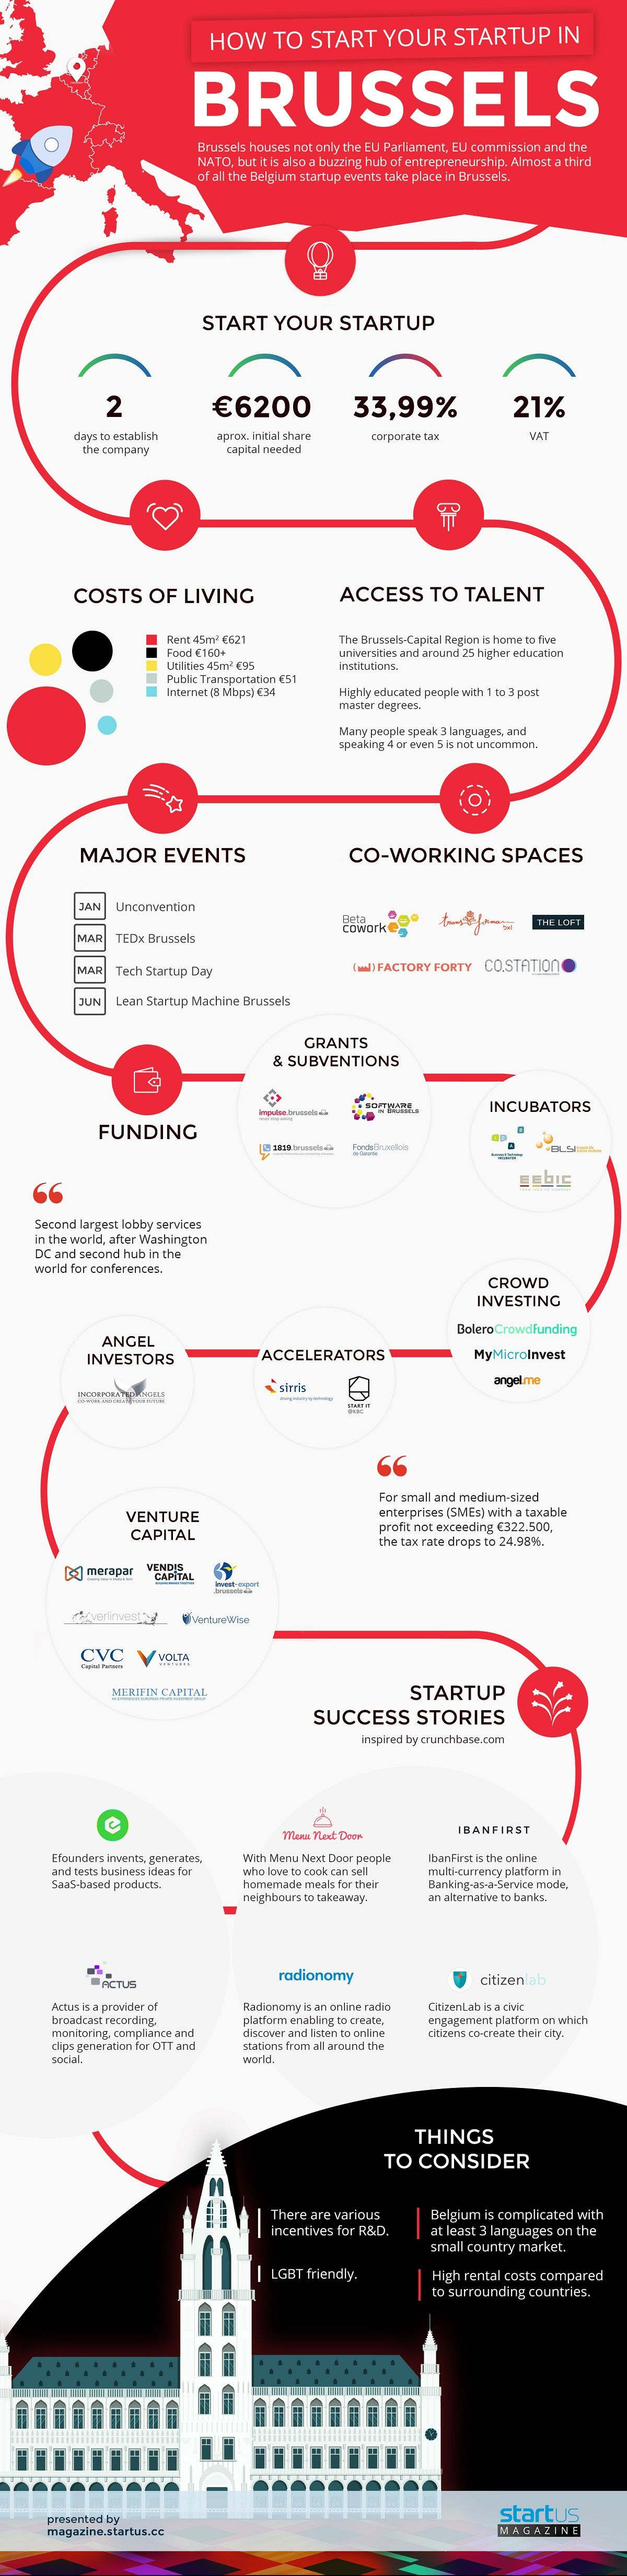 How To Start Your Startup In Brussels #Infographic